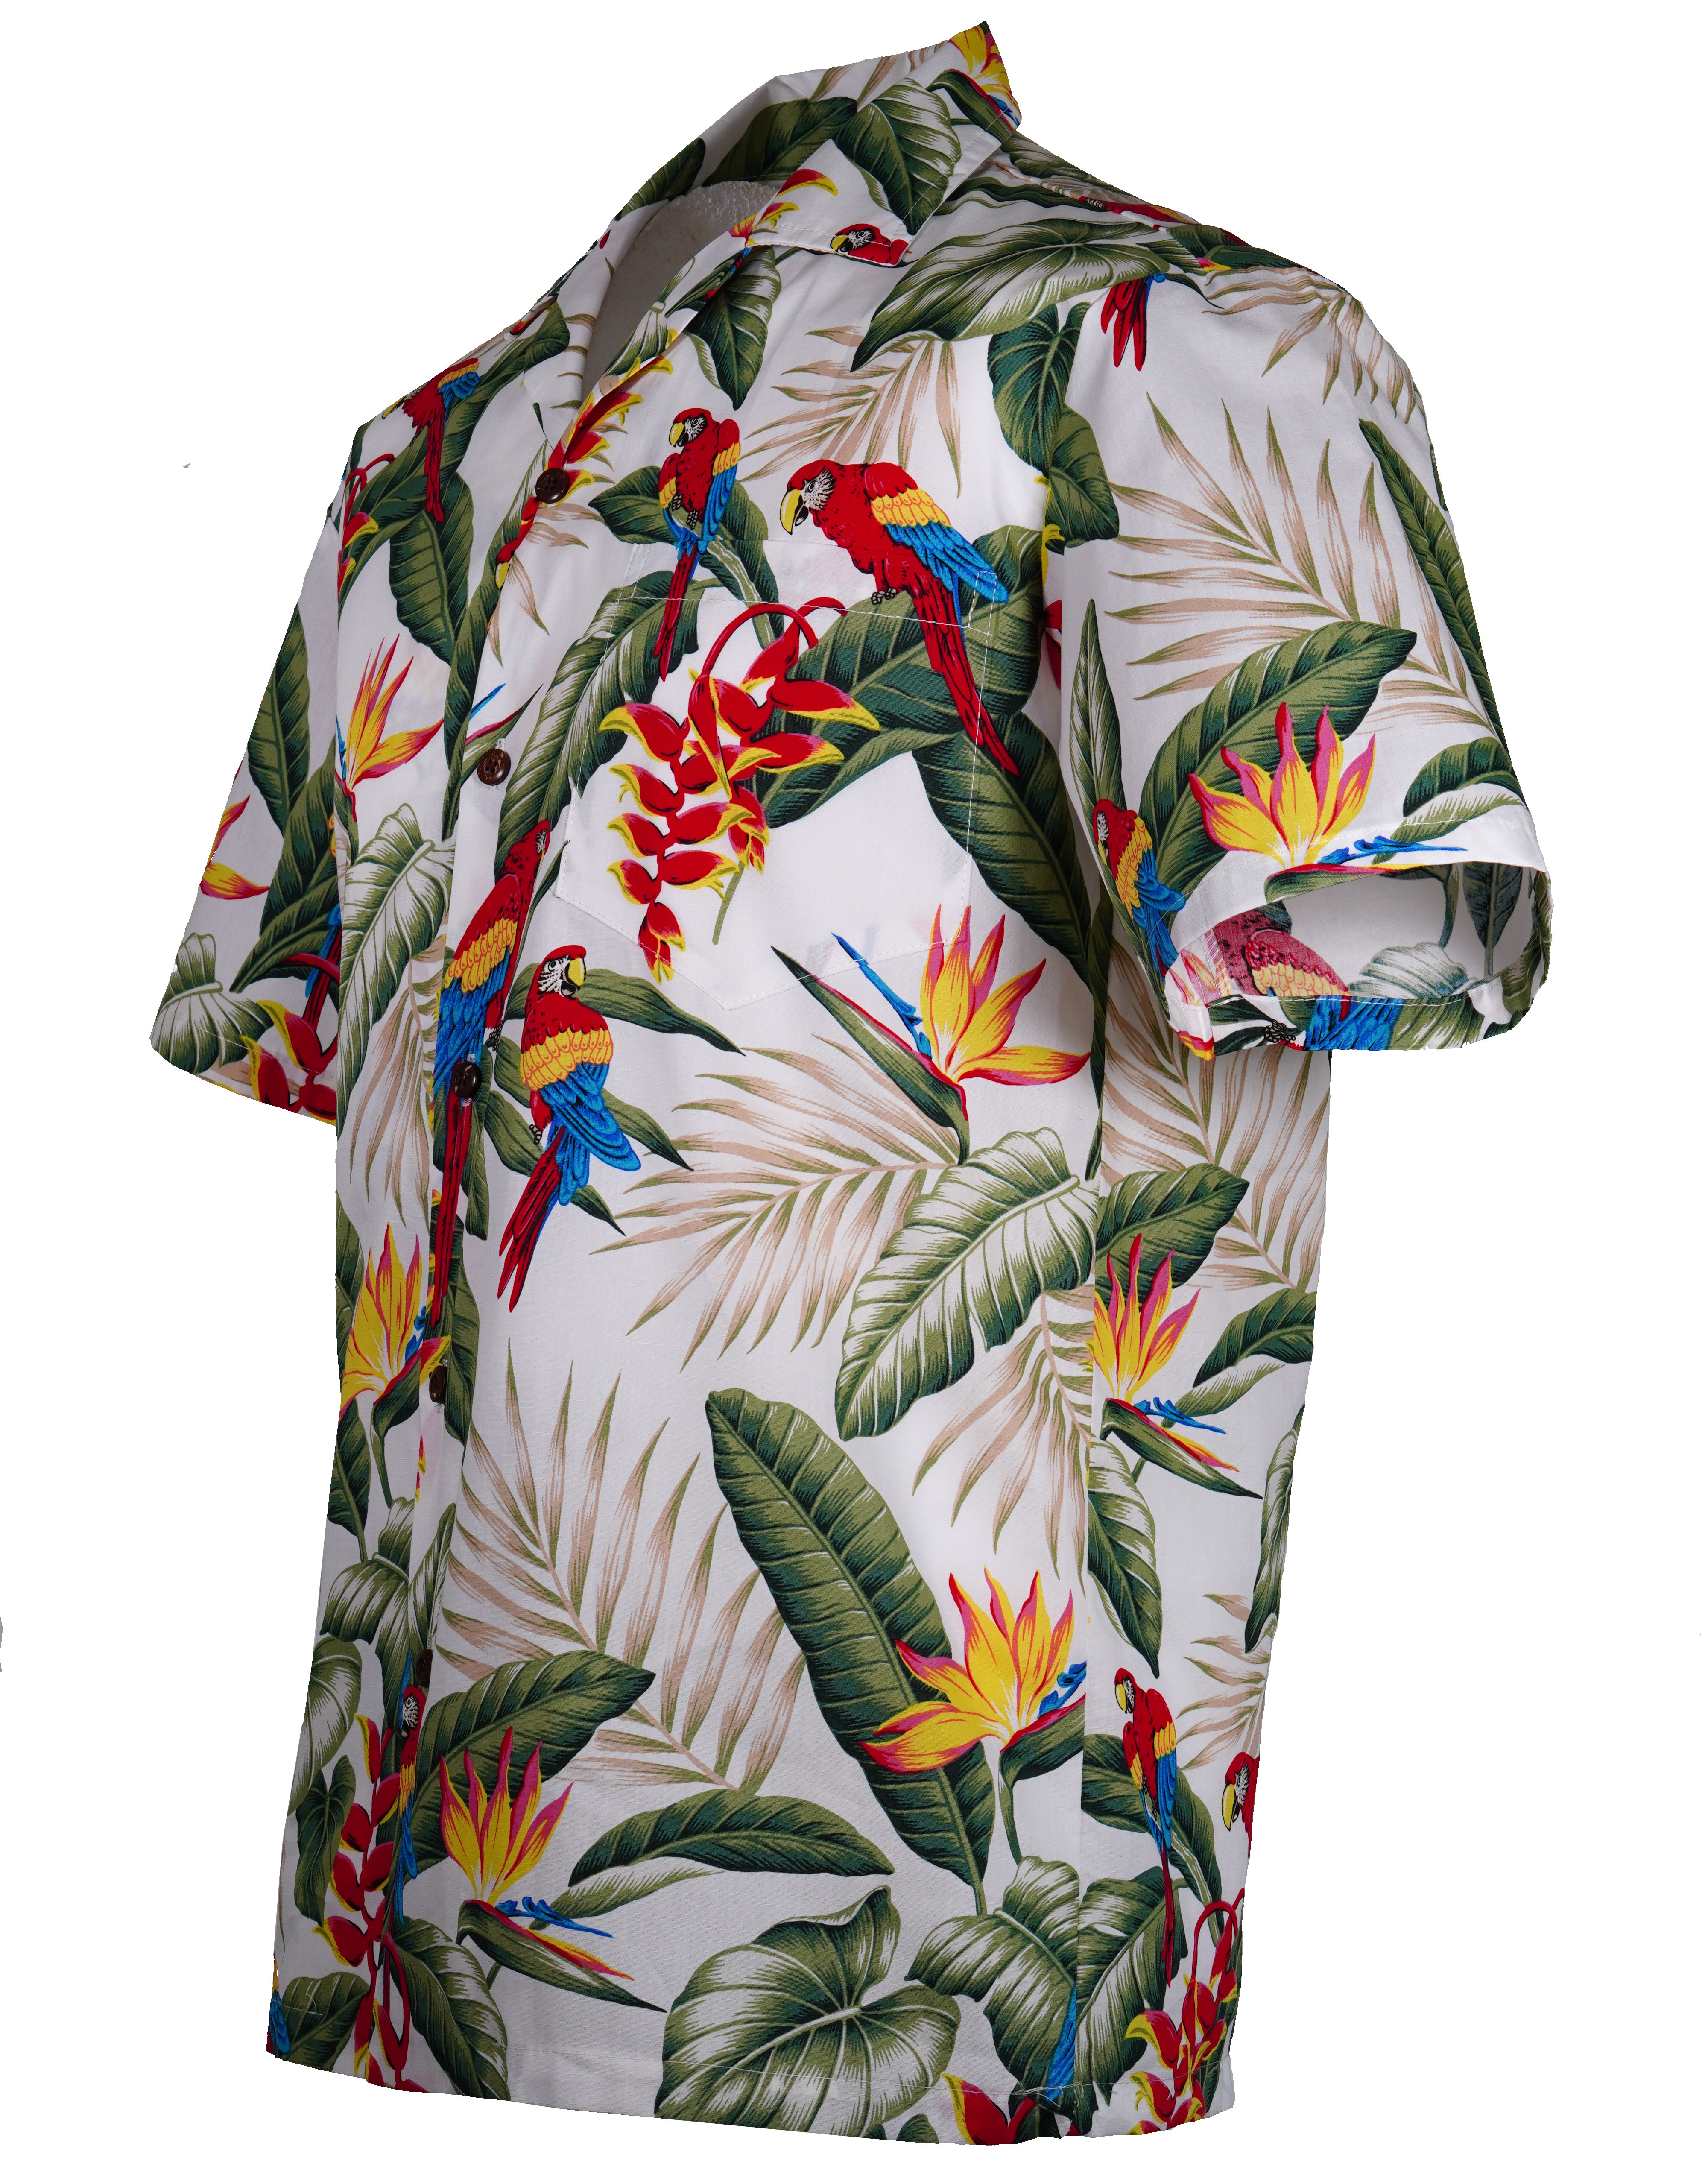 Original Hawaiihemd -JungleHoot-